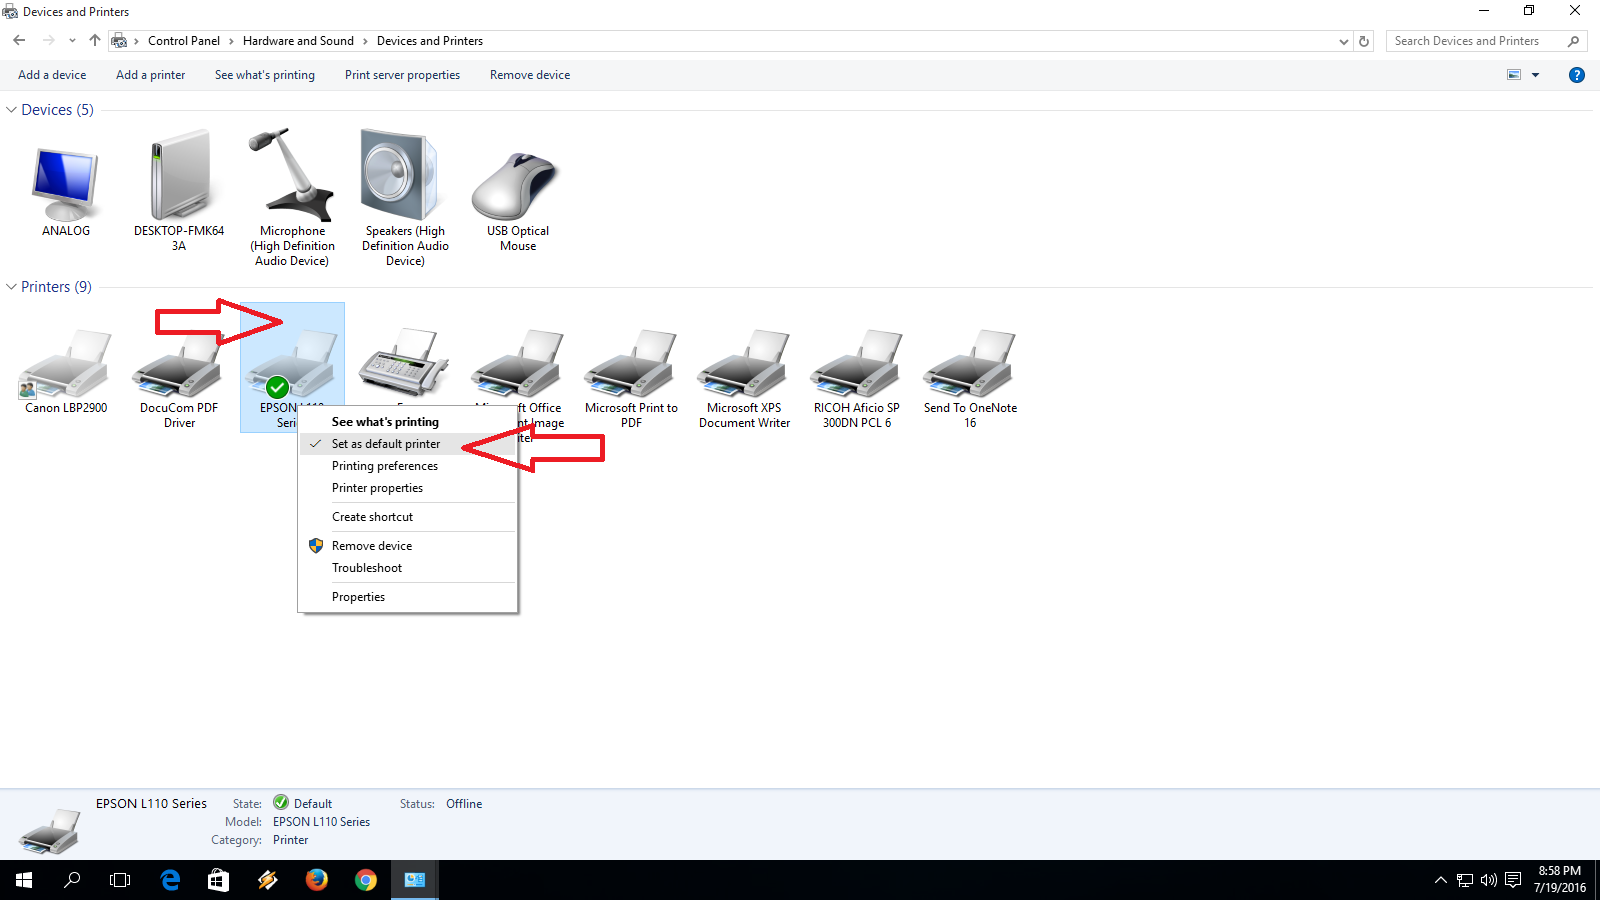 Learn New Things: How to Set Printer as a Default Printer in Windows